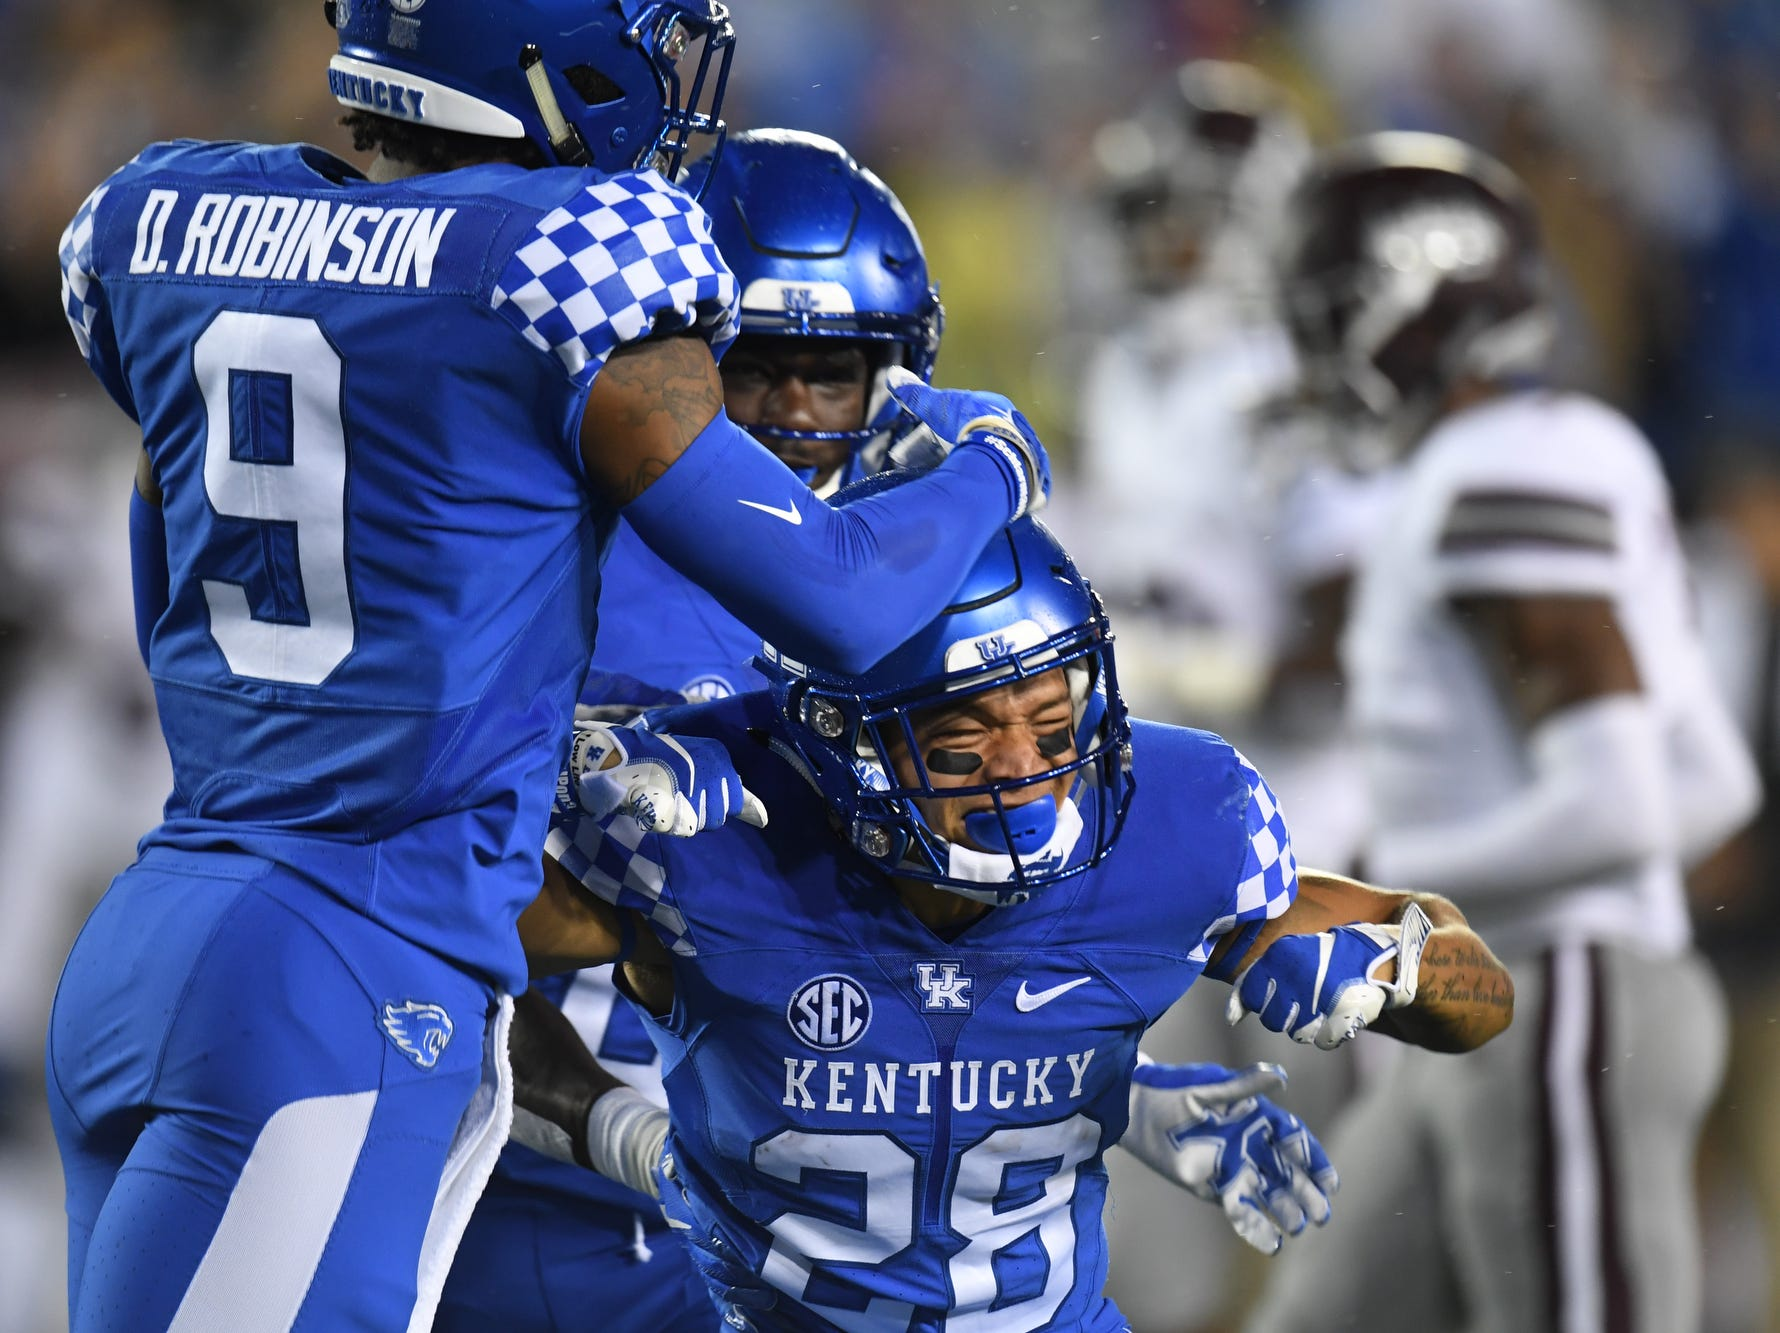 UK RB Zach Johnson celebrates after giving a hard hit on special teams during the University of Kentucky football game against Mississippi State at Kroger Field in Lexington, Kentucky on Saturday, September 22, 2018.